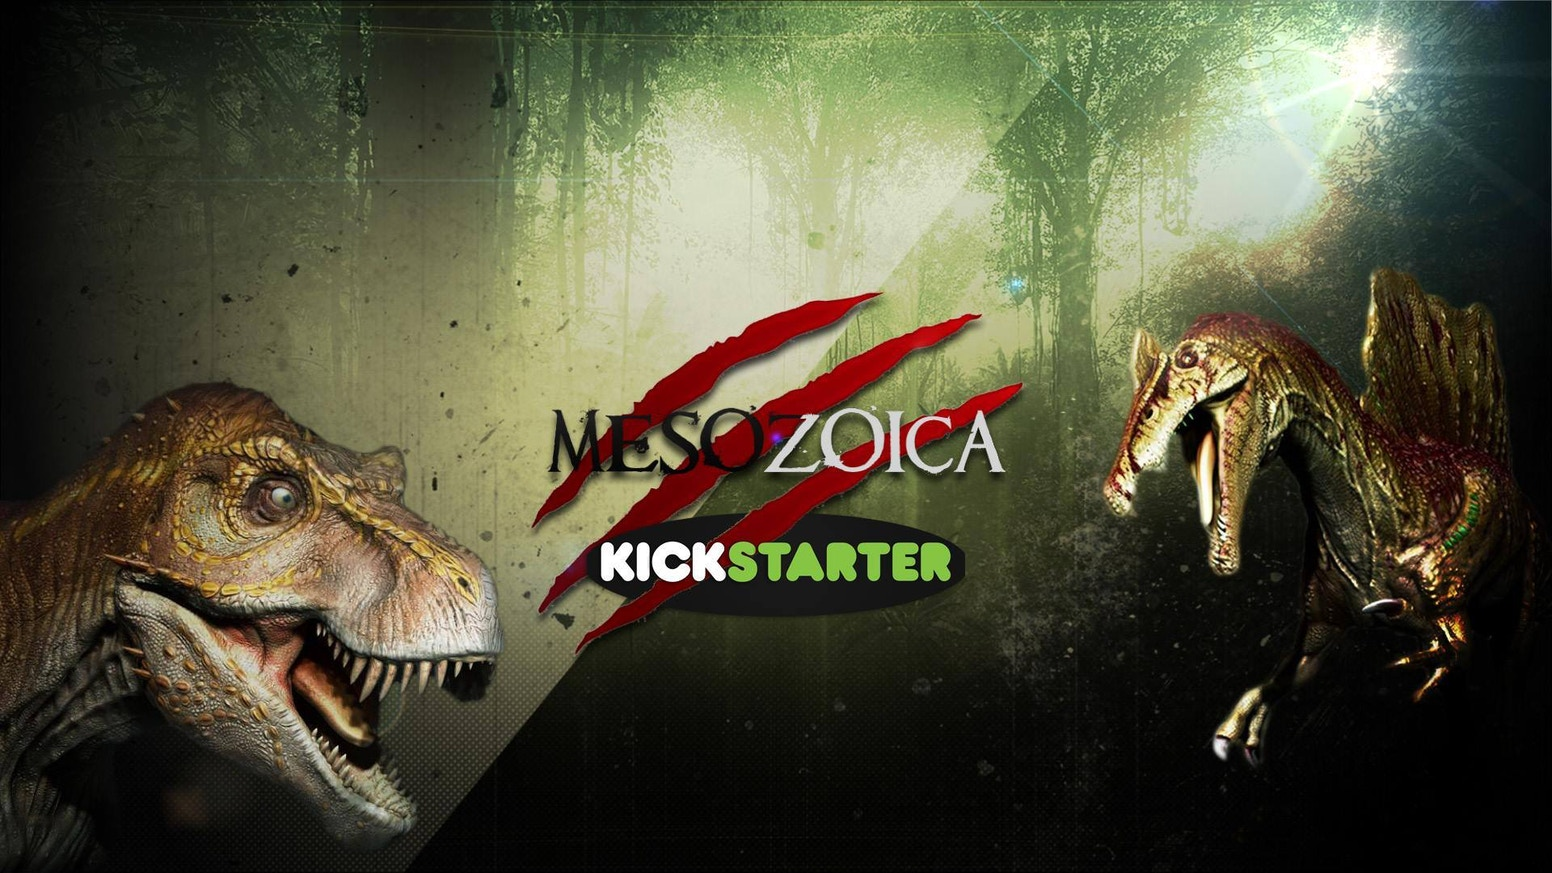 Mesozoica is a next generation tycoon simulator that brings the player into a world where they control their very own dinosaur inhabited theme-park